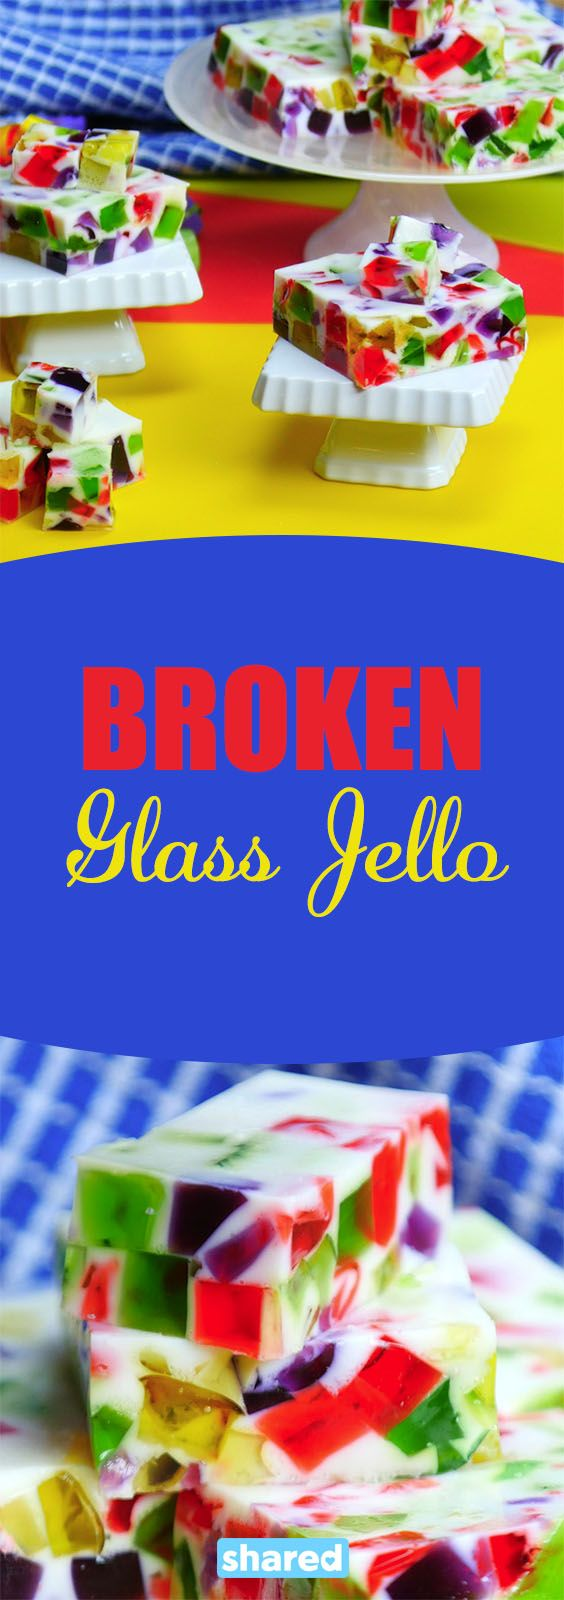 Jell-o is a staple at most households. It has been around forever and has been turned into so many different dishes over the years, but none as colorful as this Broken Glass Jell-o. Also called Stained Glass Jell-o, this dessert mixes together all your favorite flavors into one rainbow wiggly brick that you and the kids will love!